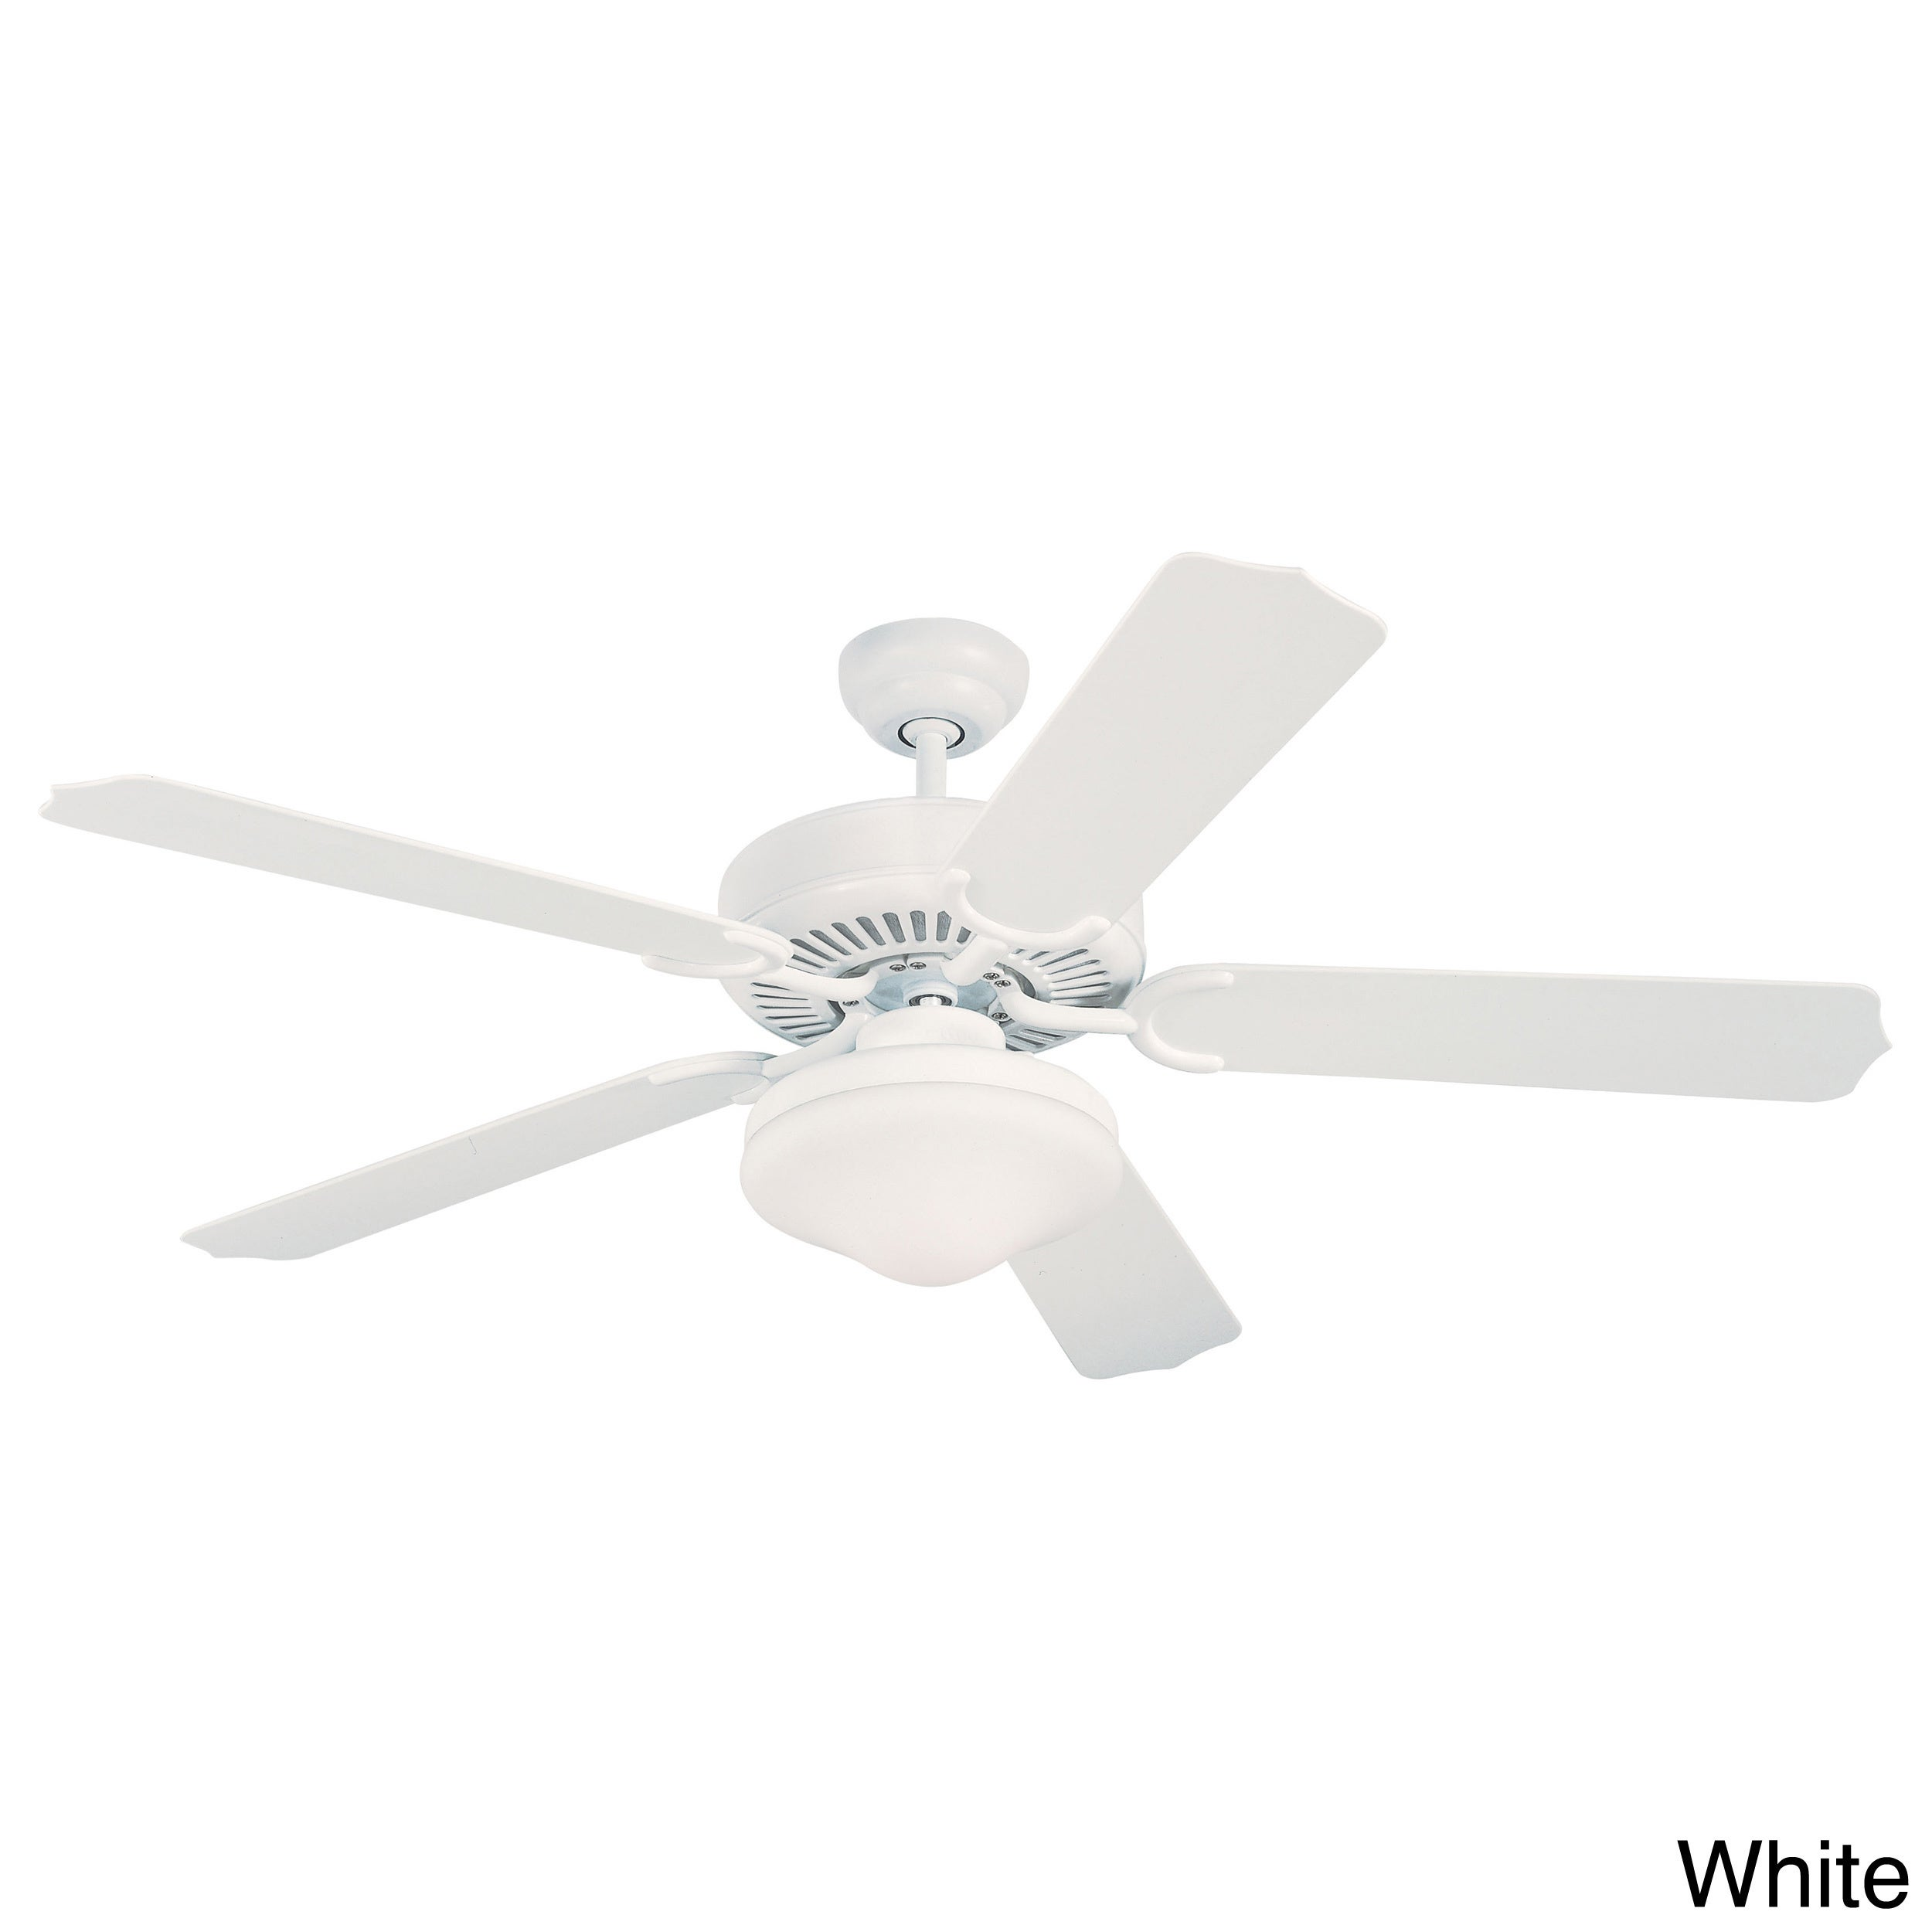 Shop monte carlo weatherford deluxe 52 inch 5 blade outdoor ceiling shop monte carlo weatherford deluxe 52 inch 5 blade outdoor ceiling fan free shipping today overstock 9214840 aloadofball Choice Image